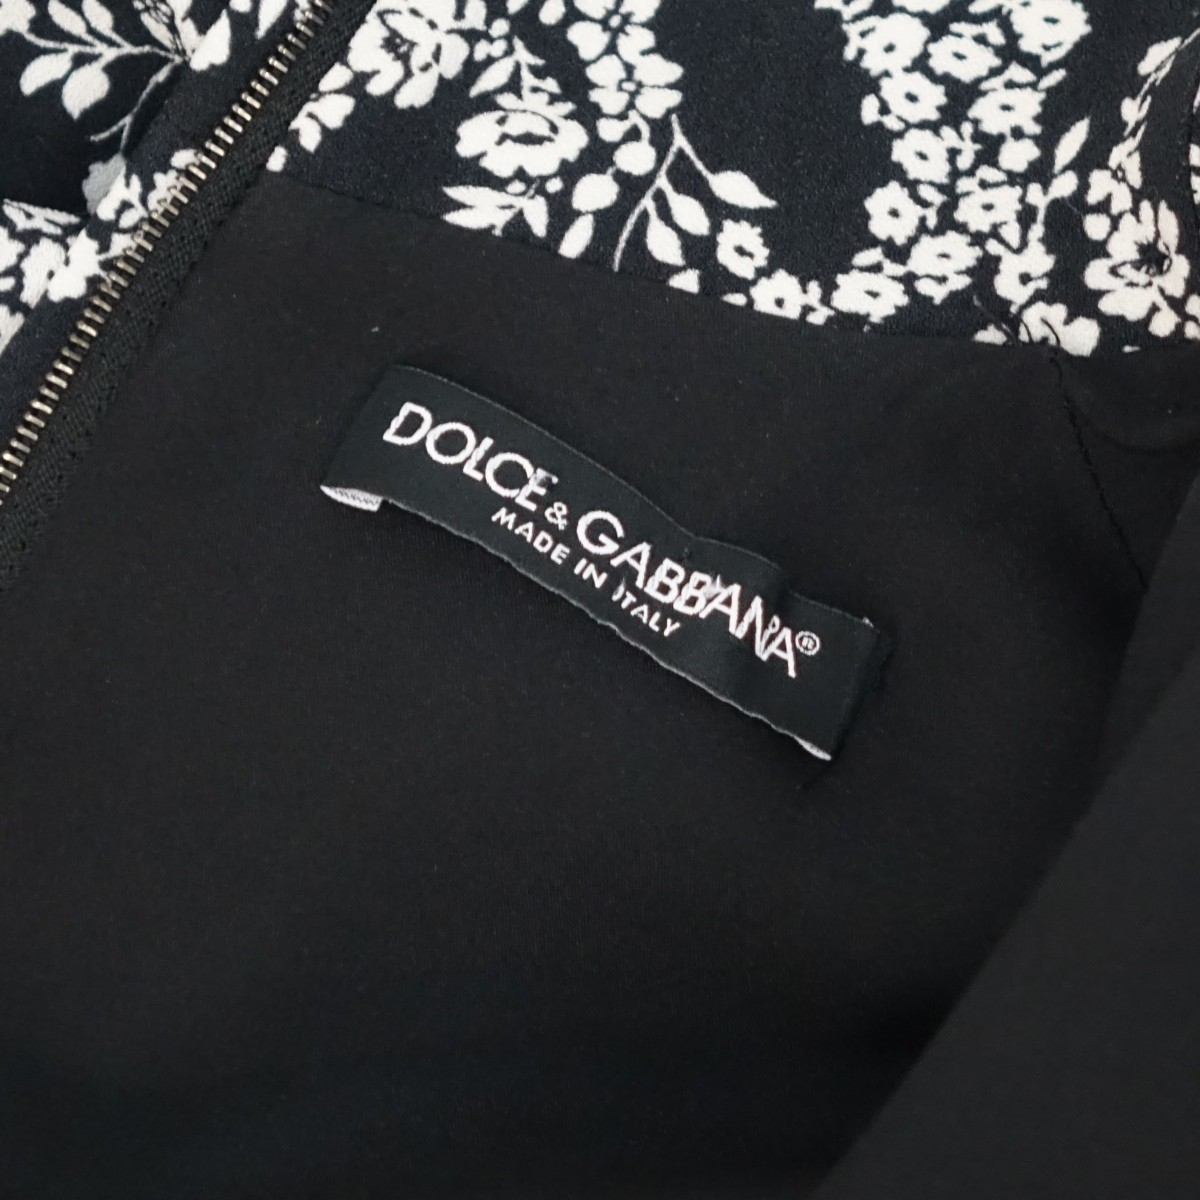 Womens Dolce & Gabbana Dress